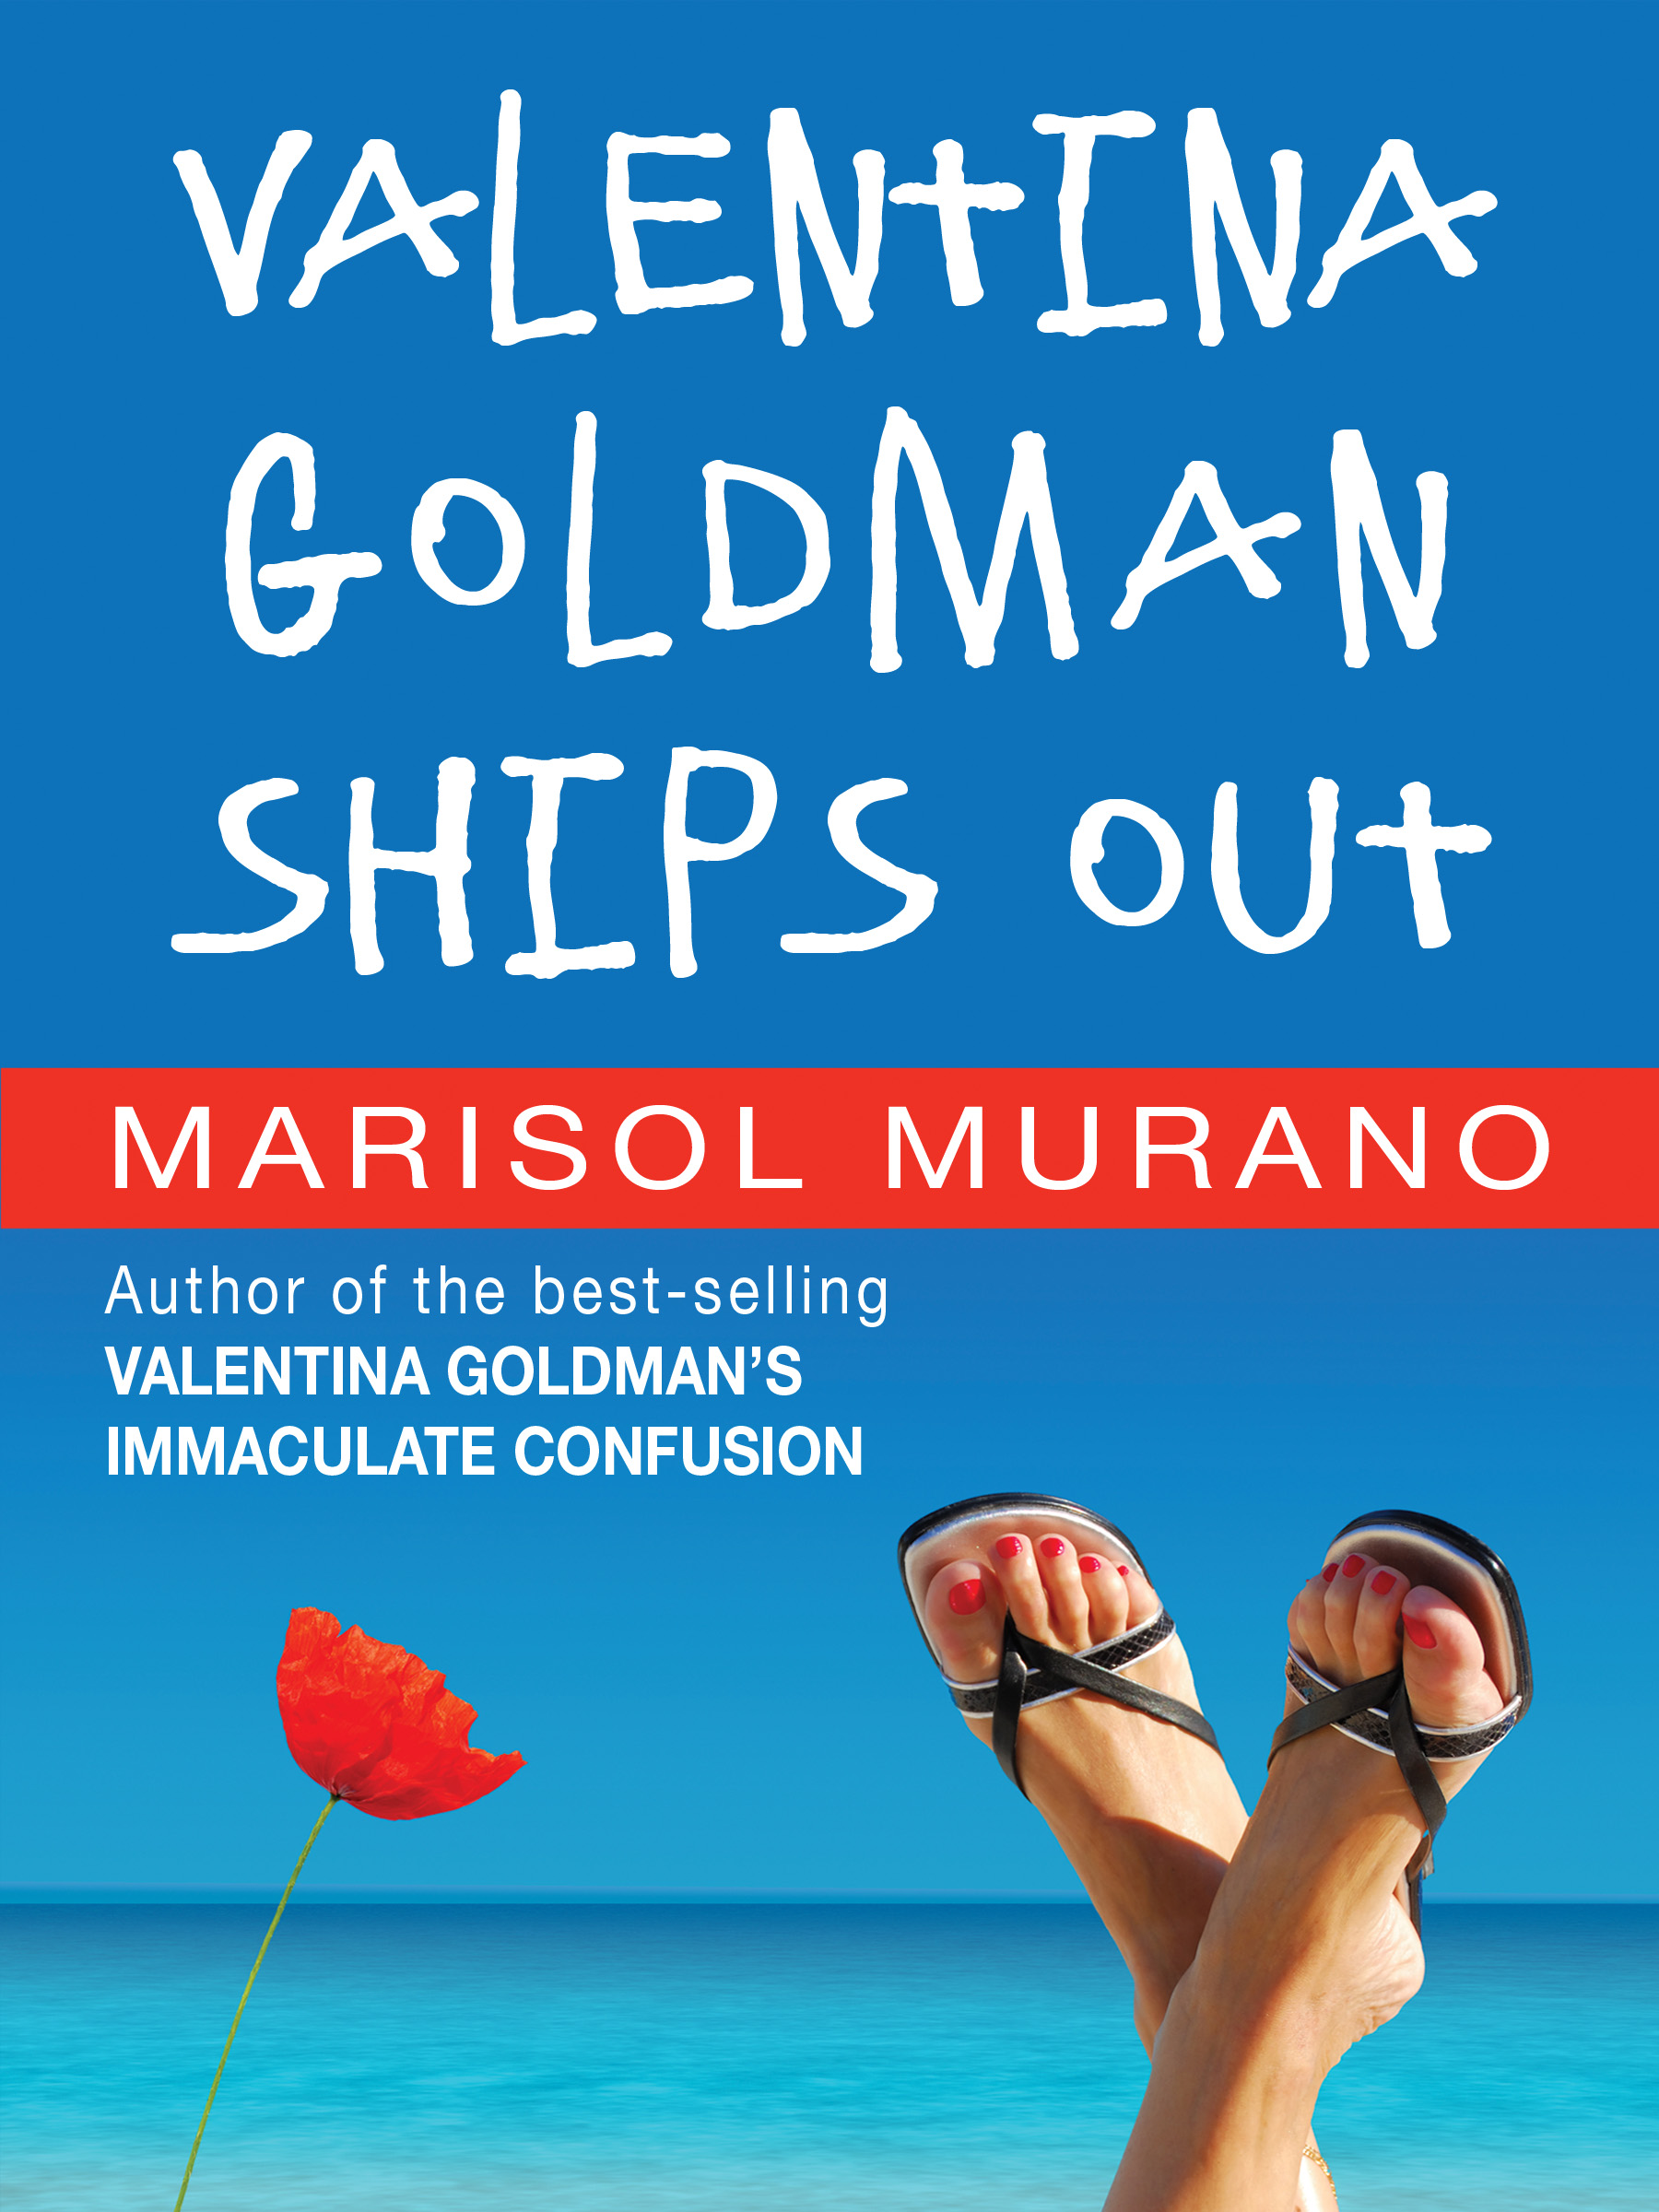 Image description: shows a woman's sandaled feet crossed in front of an expanse of bright blue sky and ocean. A red flower is in the bottom left corner. Text: Valentina Goldman Ships Out. Marisol Murano, author of the best-selling Valentina Goldman's Immaculate Confusion.